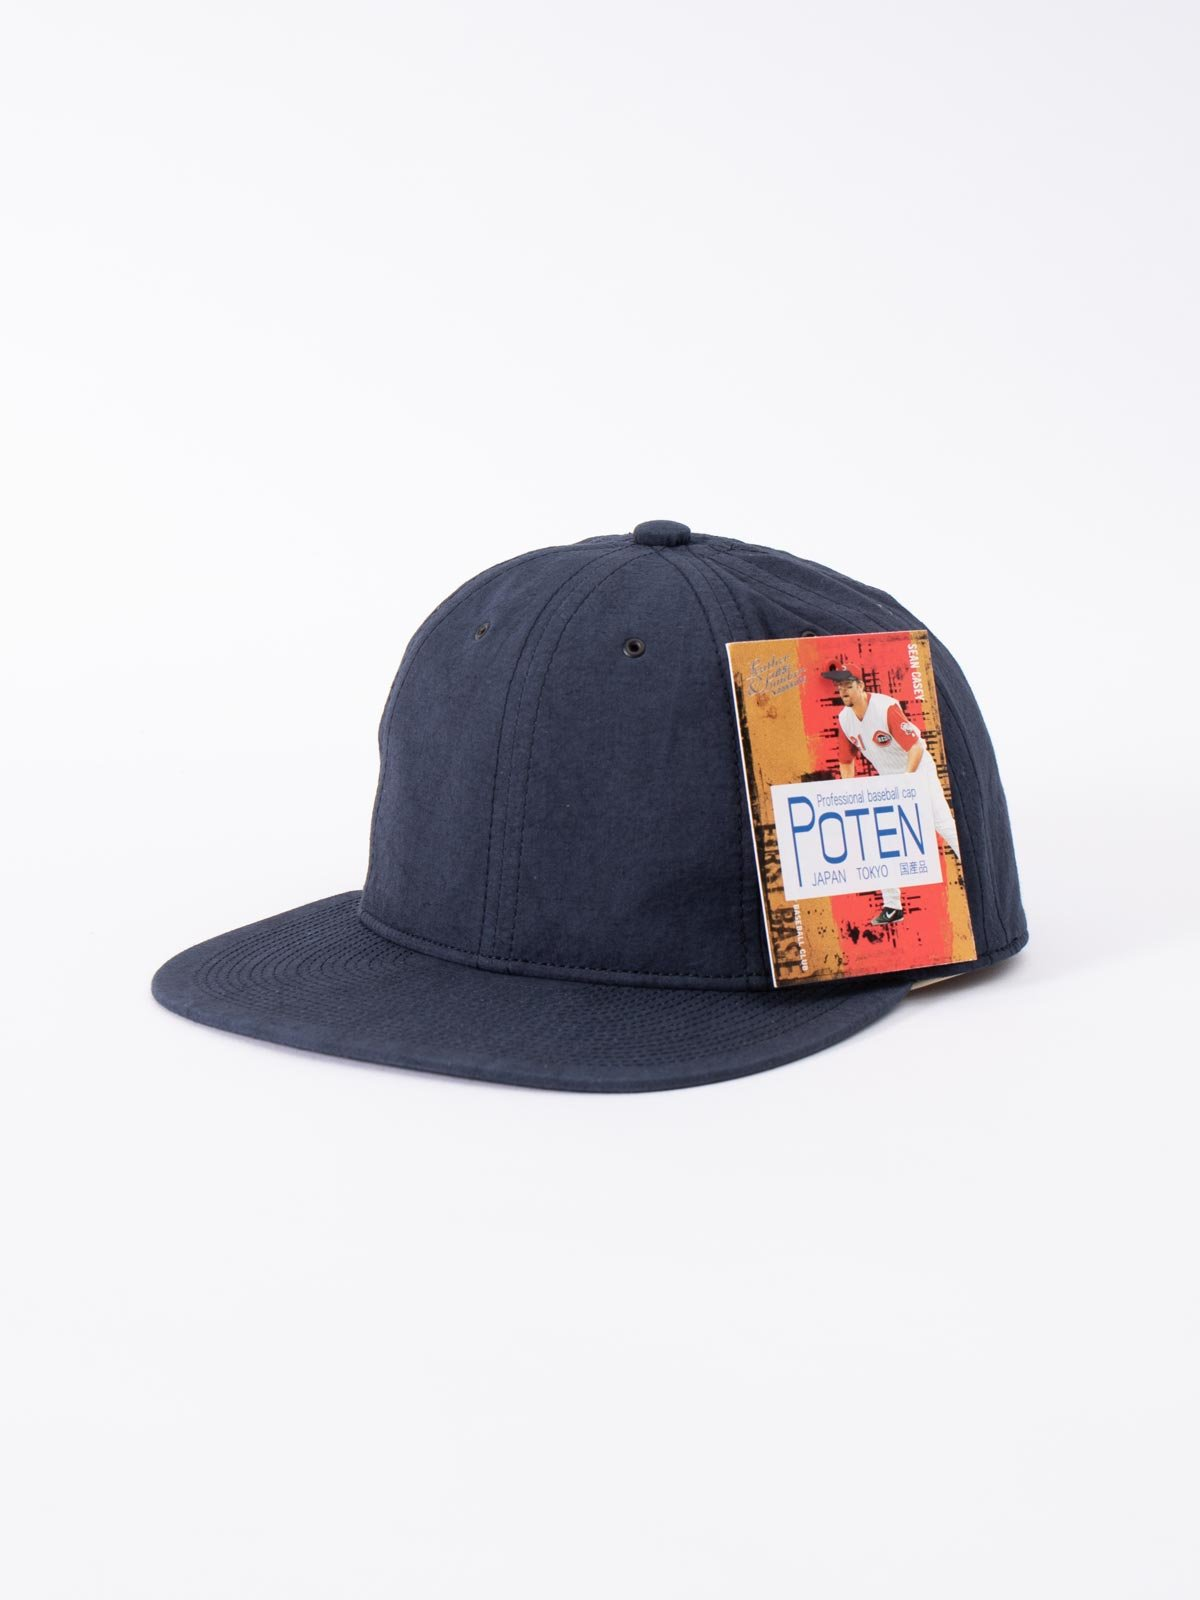 NAVY SPECIAL DYED COTTON / LINEN CAP - Image 1